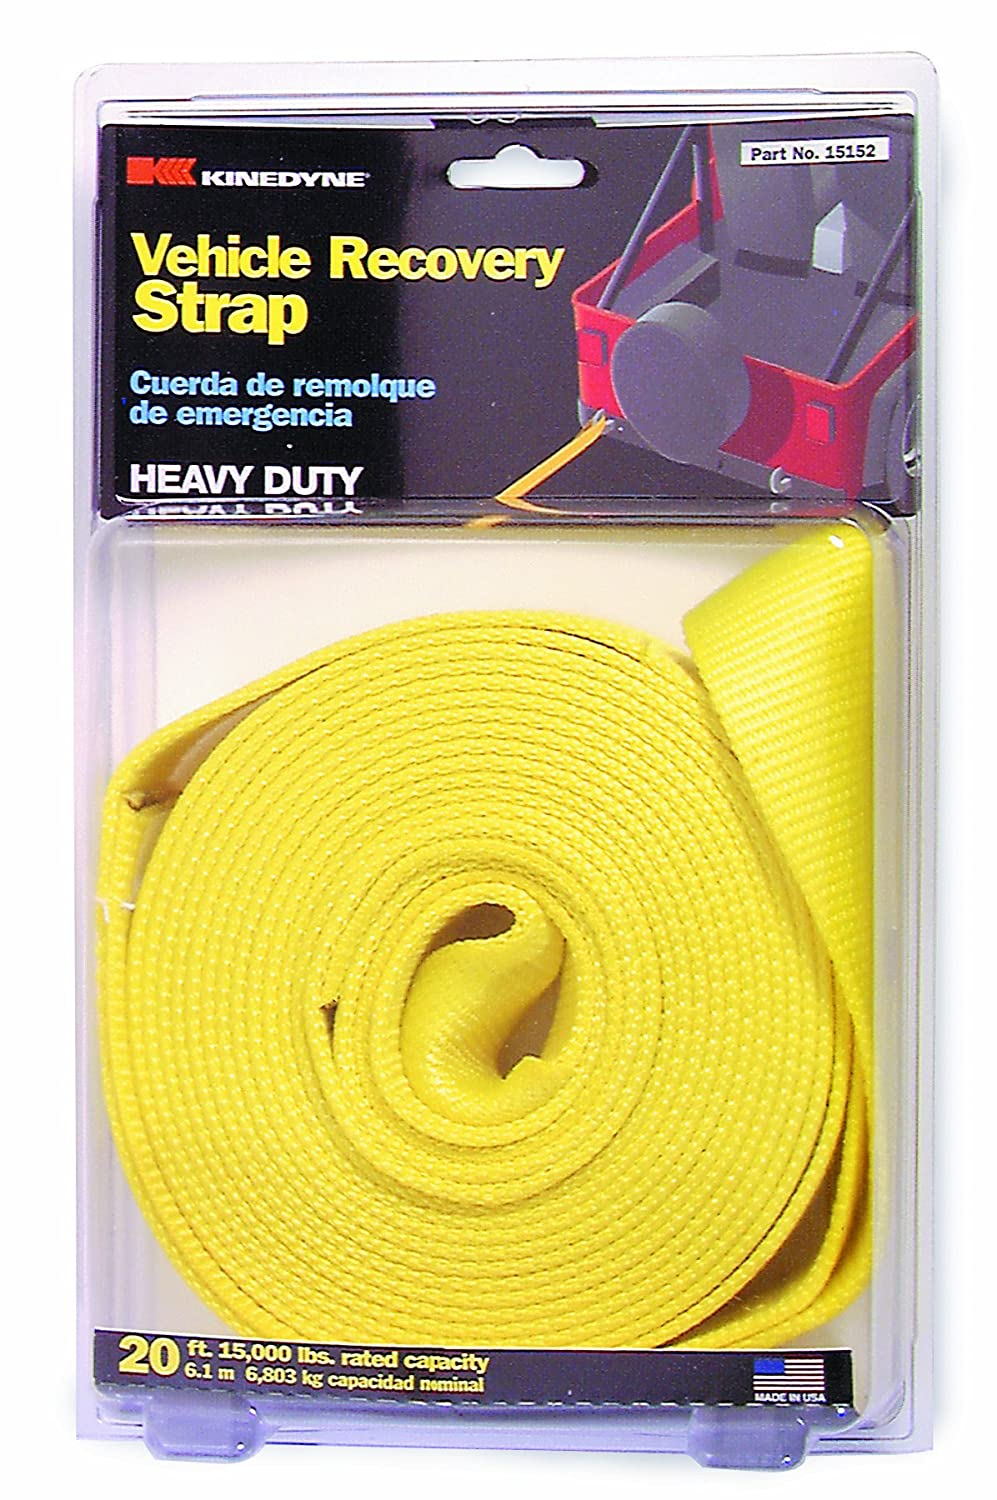 Steadymate 15520 20' Vehicle Recovery Strap